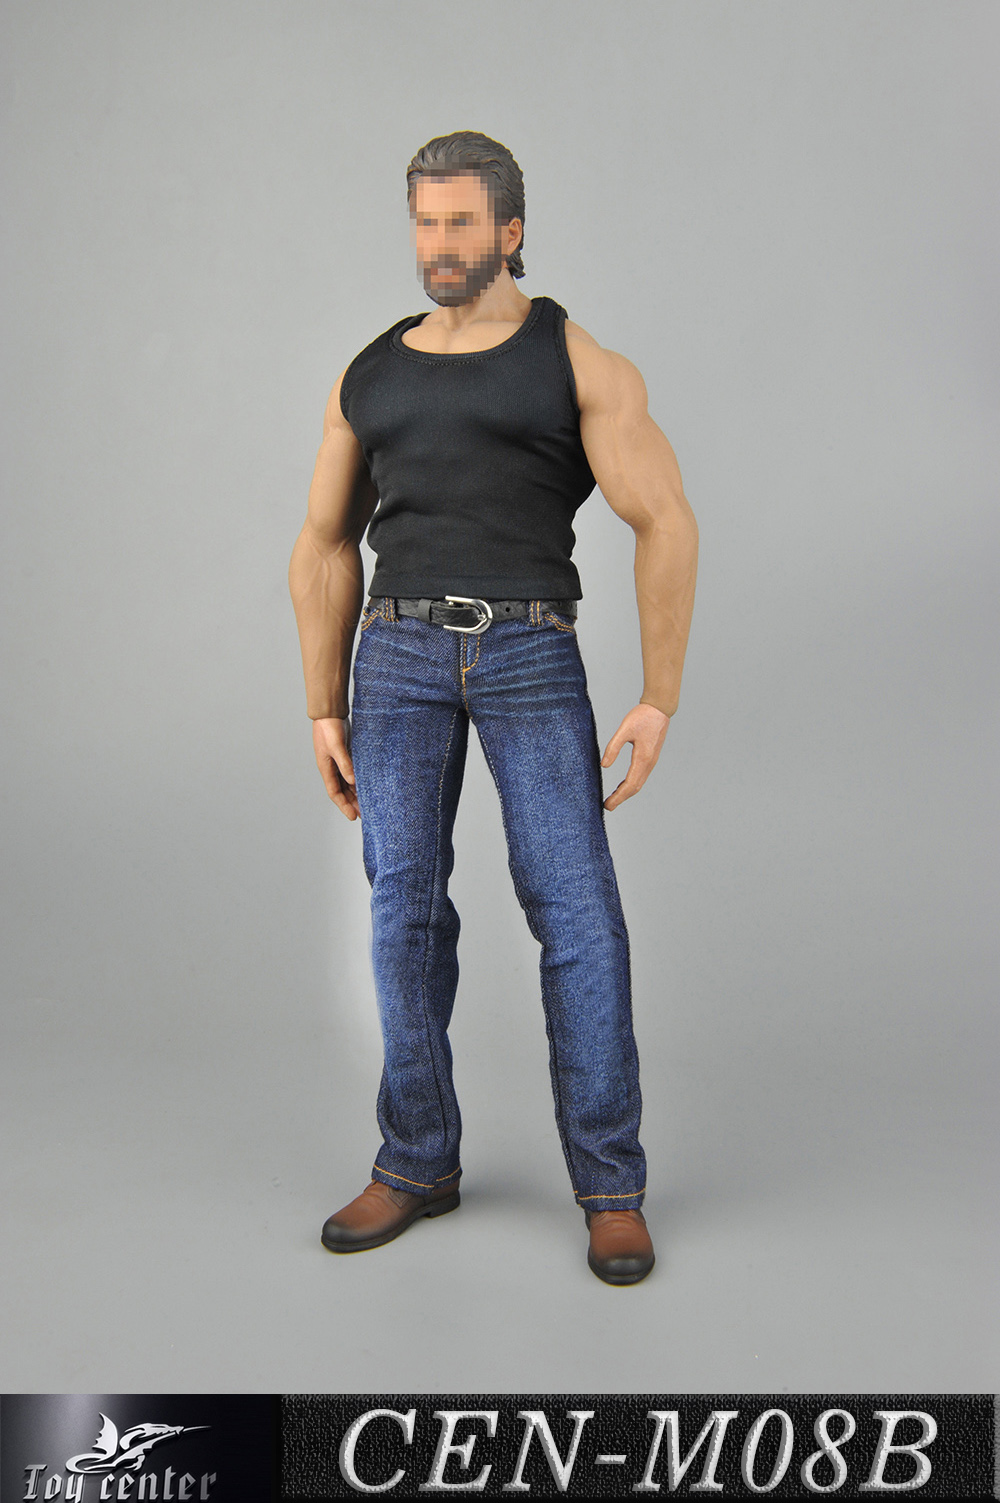 NEW PRODUCT: Toy Center: 1/6 Sports Vest Jeans Set - Three Colors A/B/C 2359